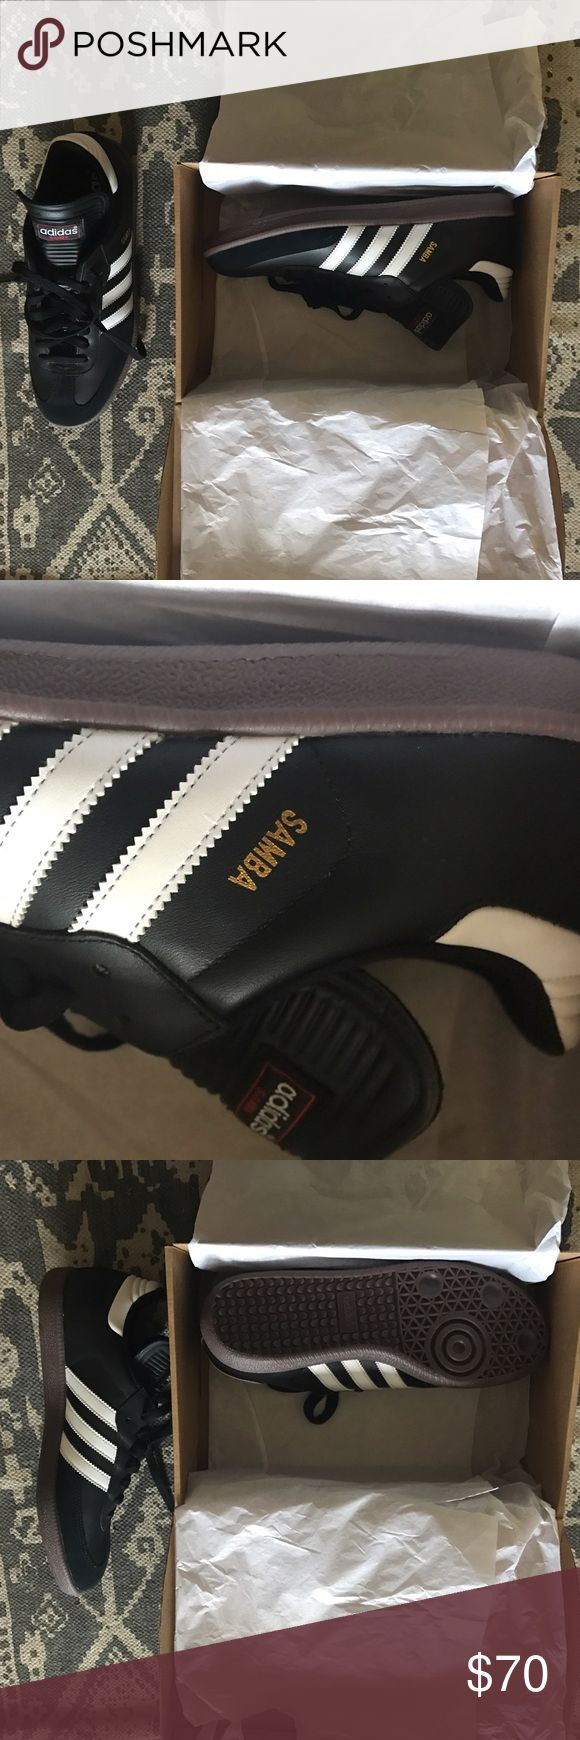 Brand new classic adidas sambas! Still in box. Brand new. Never worn Adidas Shoes Sneakers